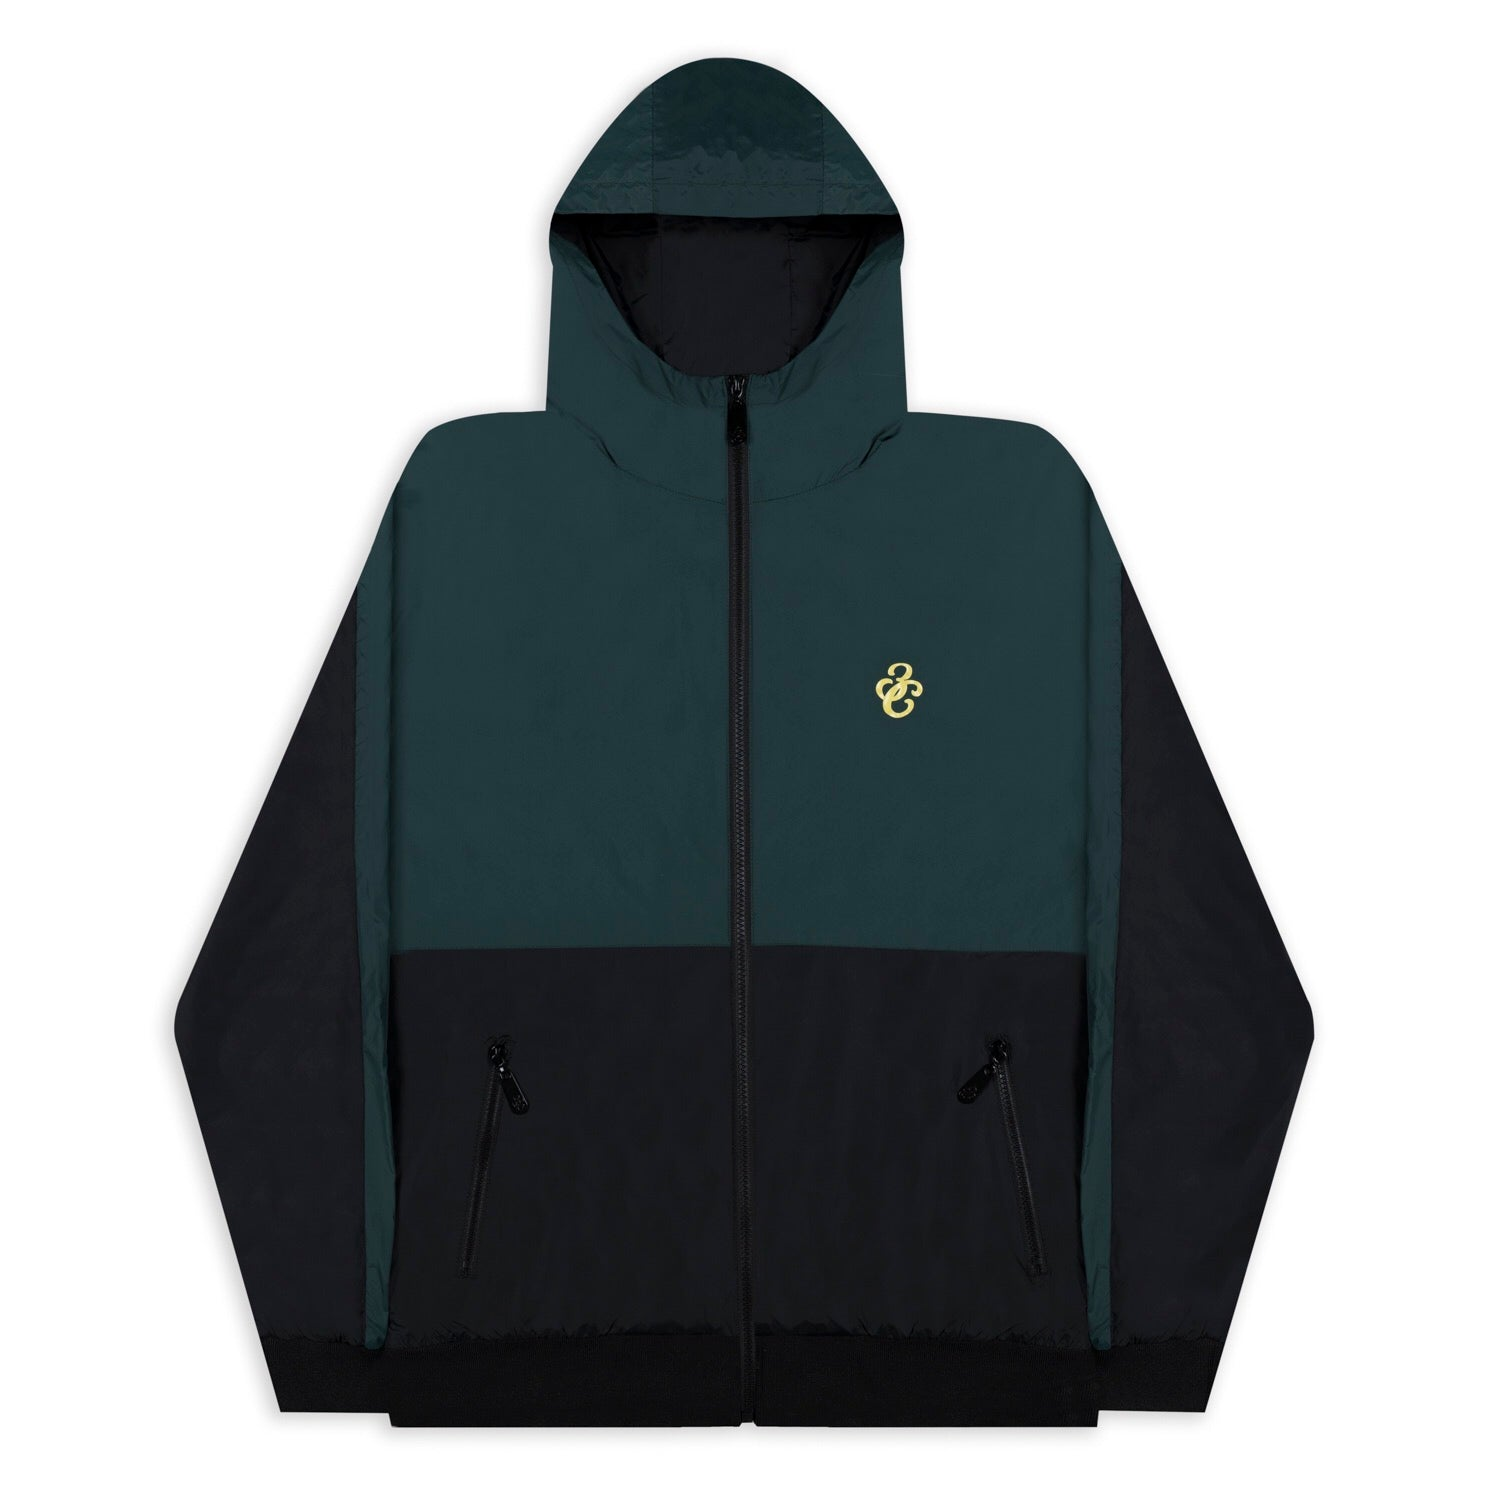 3C Windbreaker Green